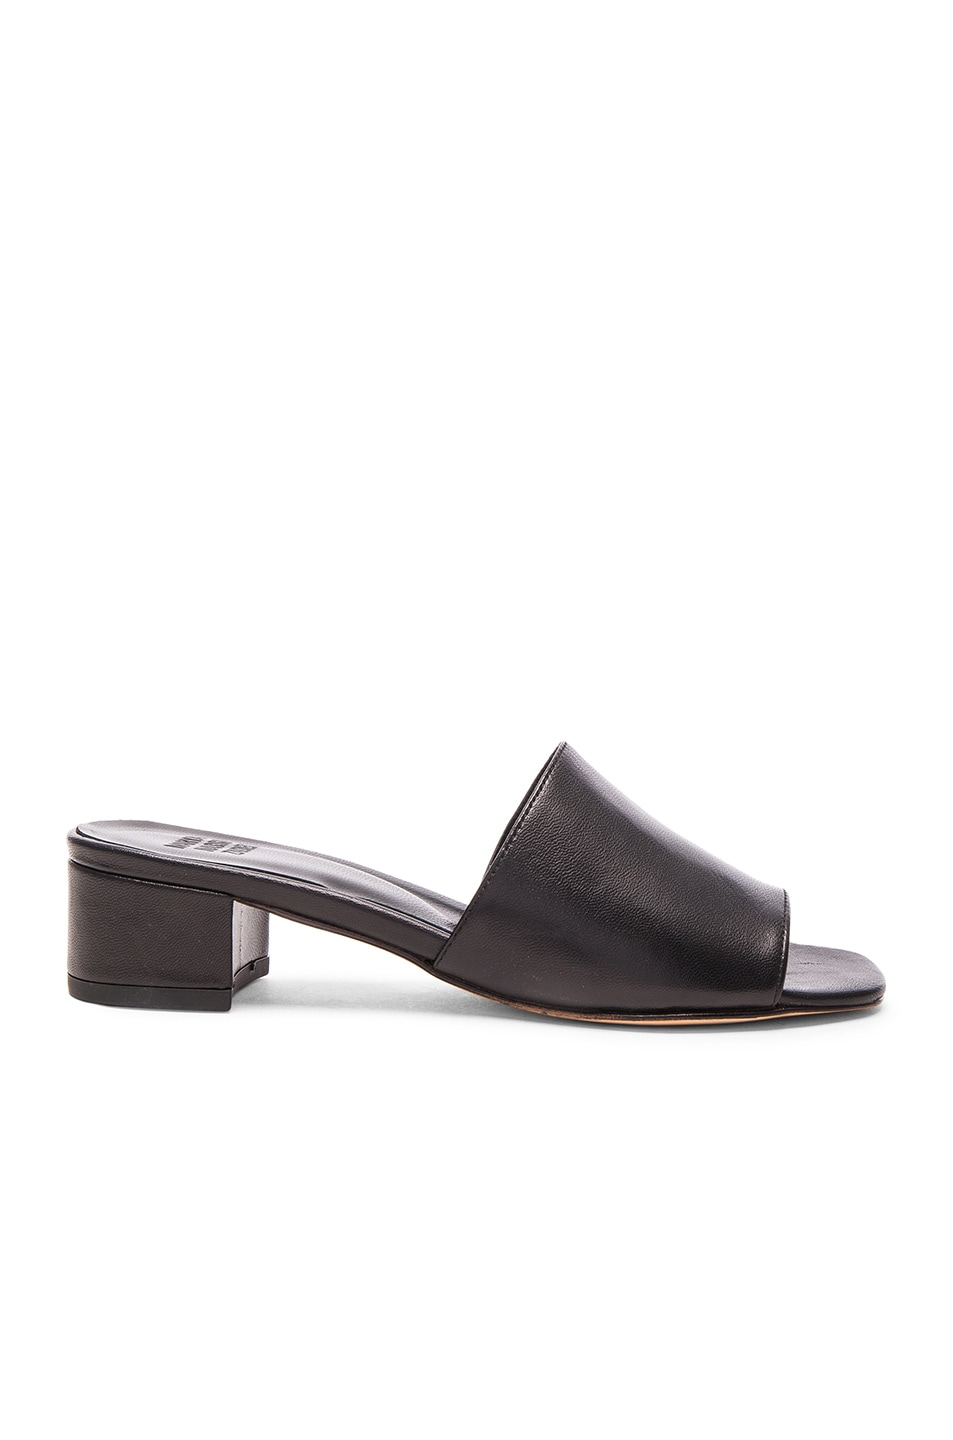 Image 1 of Maryam Nassir Zadeh Sophie Slide in Black Leather